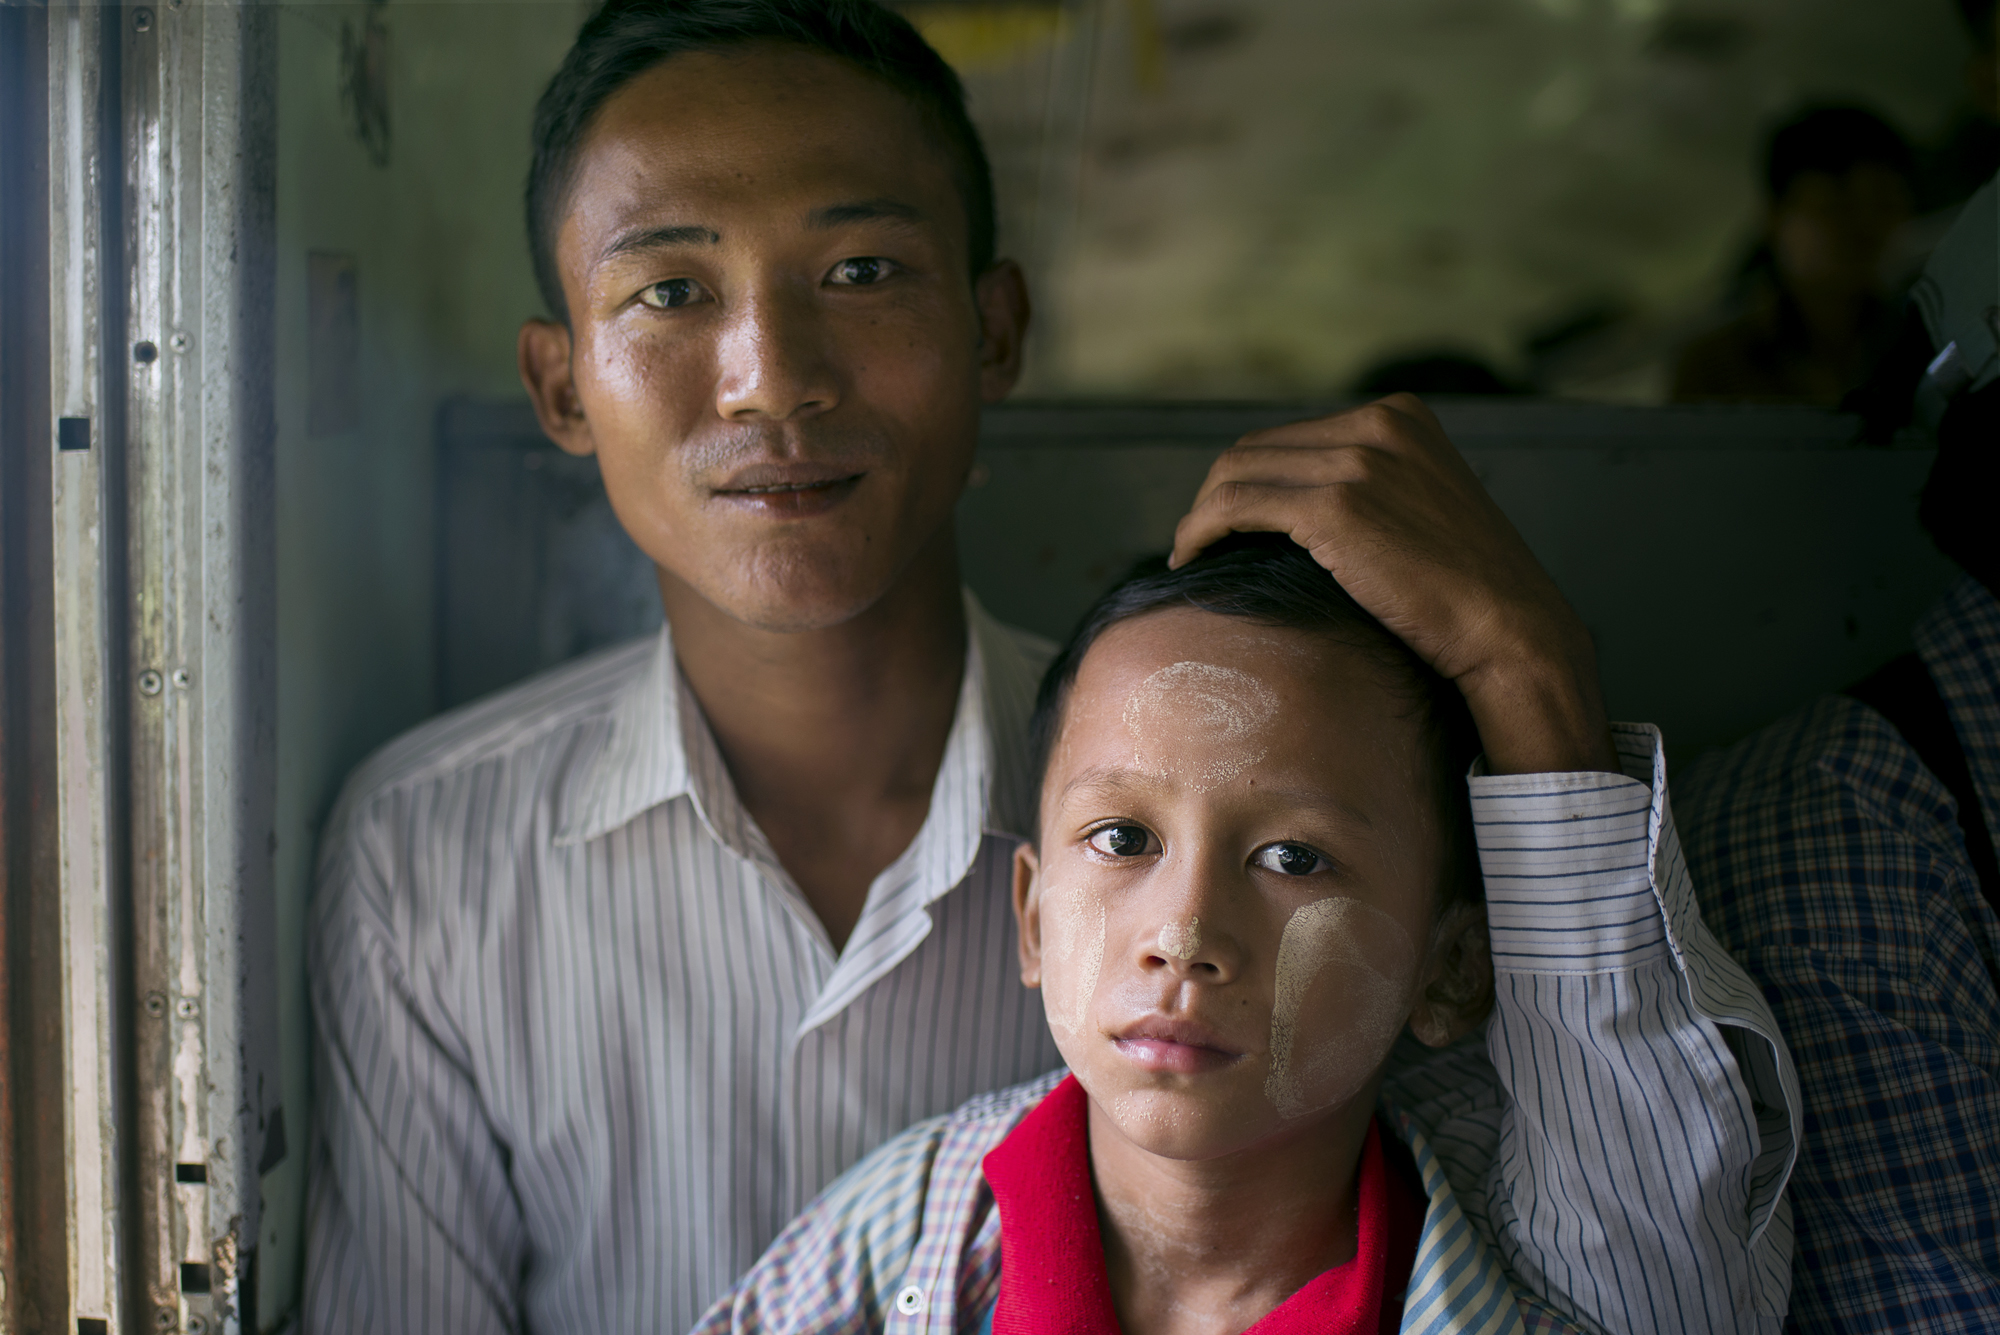 Father and son on the way to visit family in Mandalay. He is in the army and is based near Yangon, and uses the train to visit his family every week.